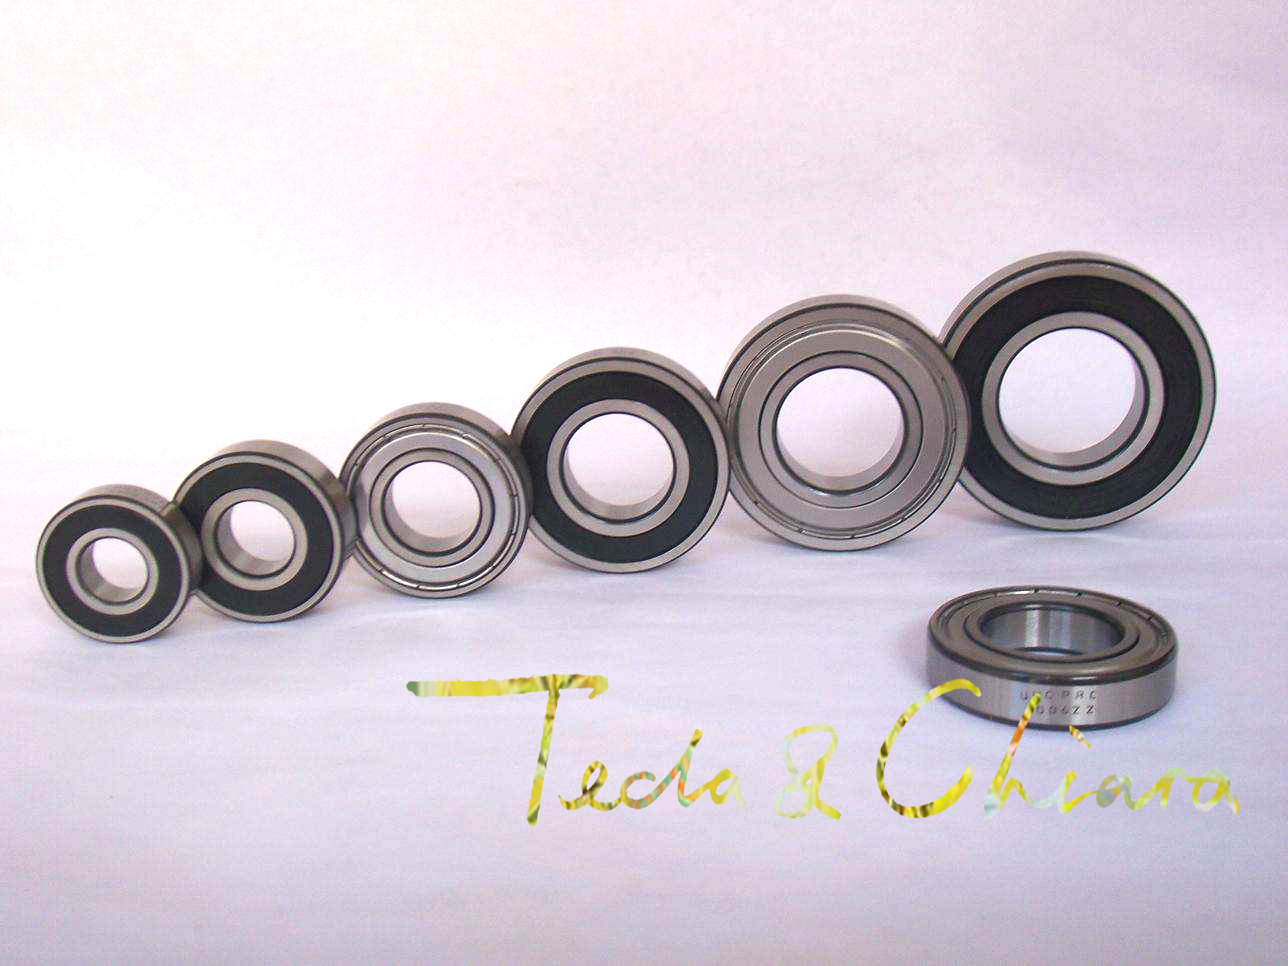 6002 6002ZZ 6002RS 6002-2Z 6002Z 6002-2RS ZZ RS RZ 2RZ Deep Groove Ball Bearings 15 x 32 x 9mm High Quality free shipping 25x47x12mm deep groove ball bearings 6005 zz 2z 6005zz bearing 6005zz 6005 2rs